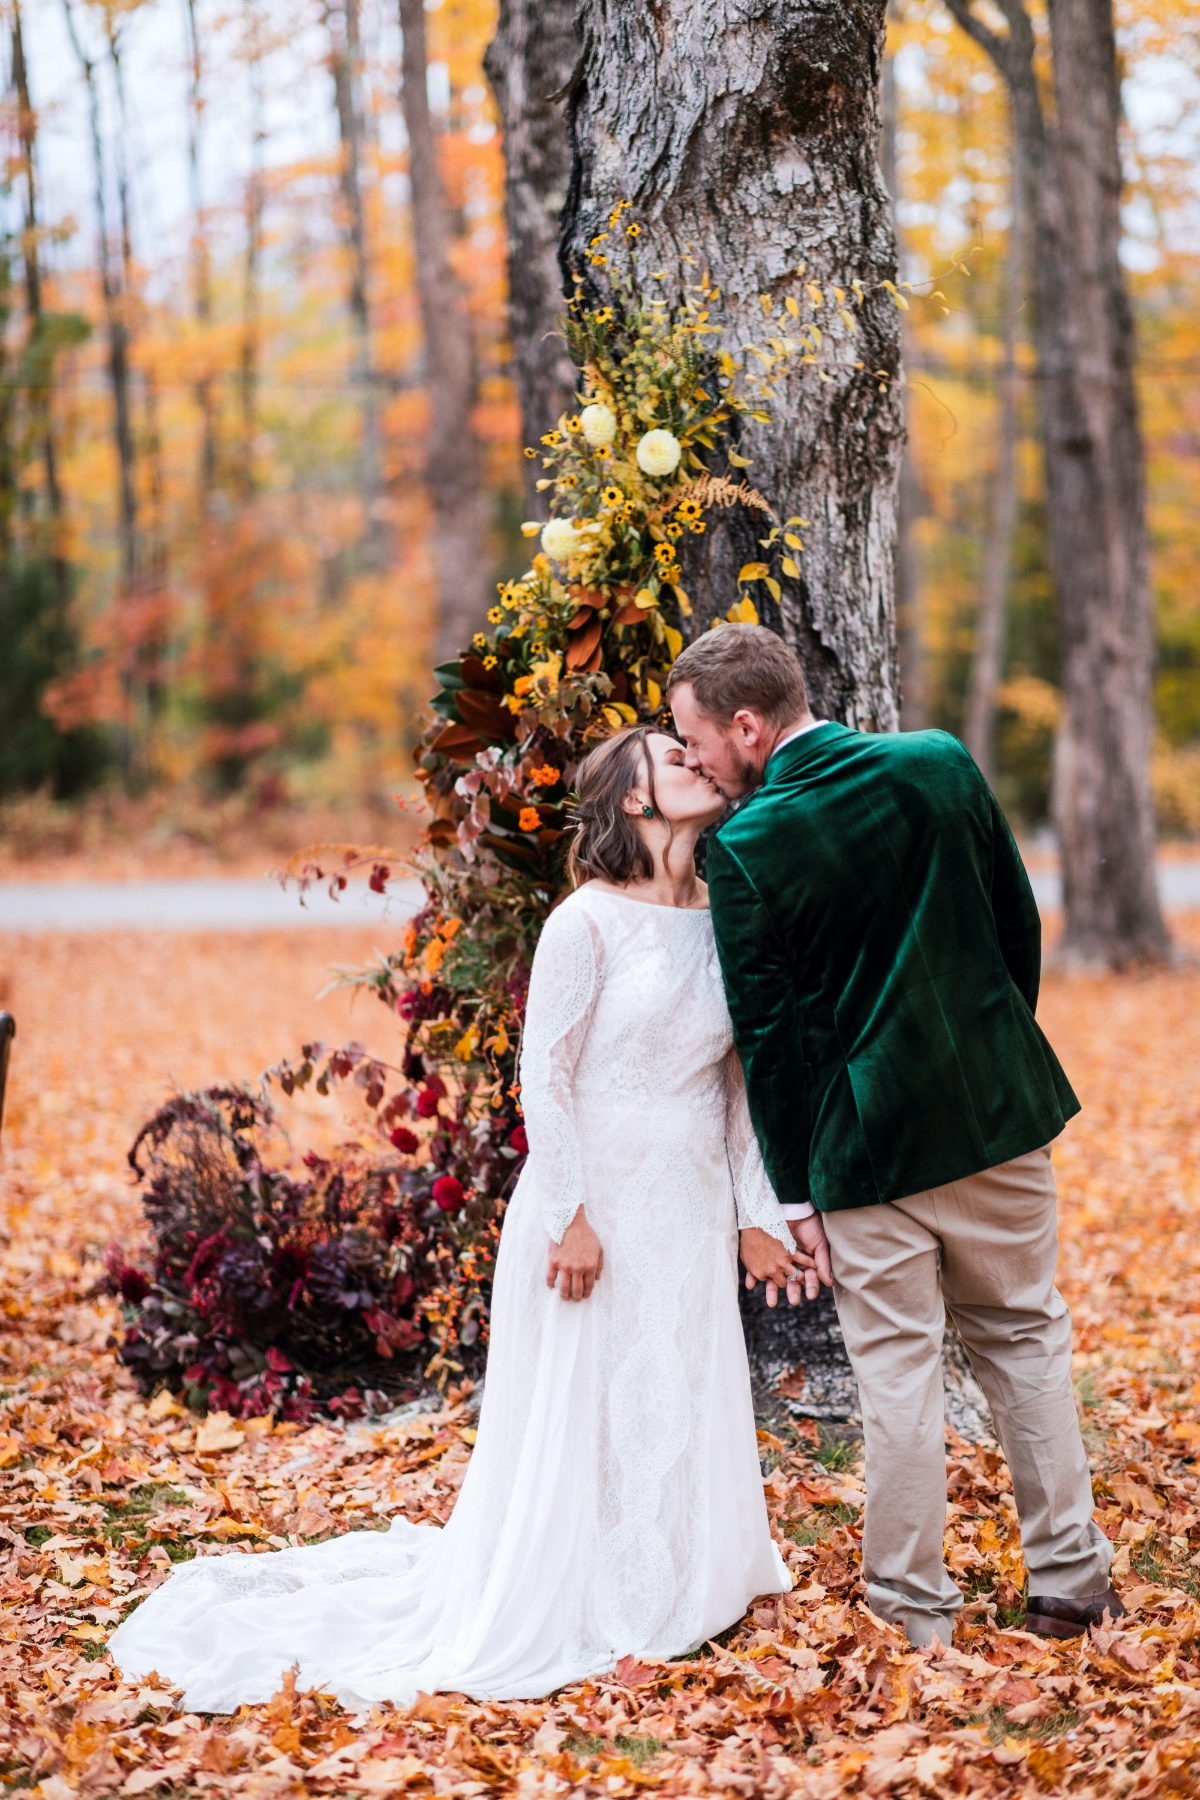 first wedding look amongst the fall leaves